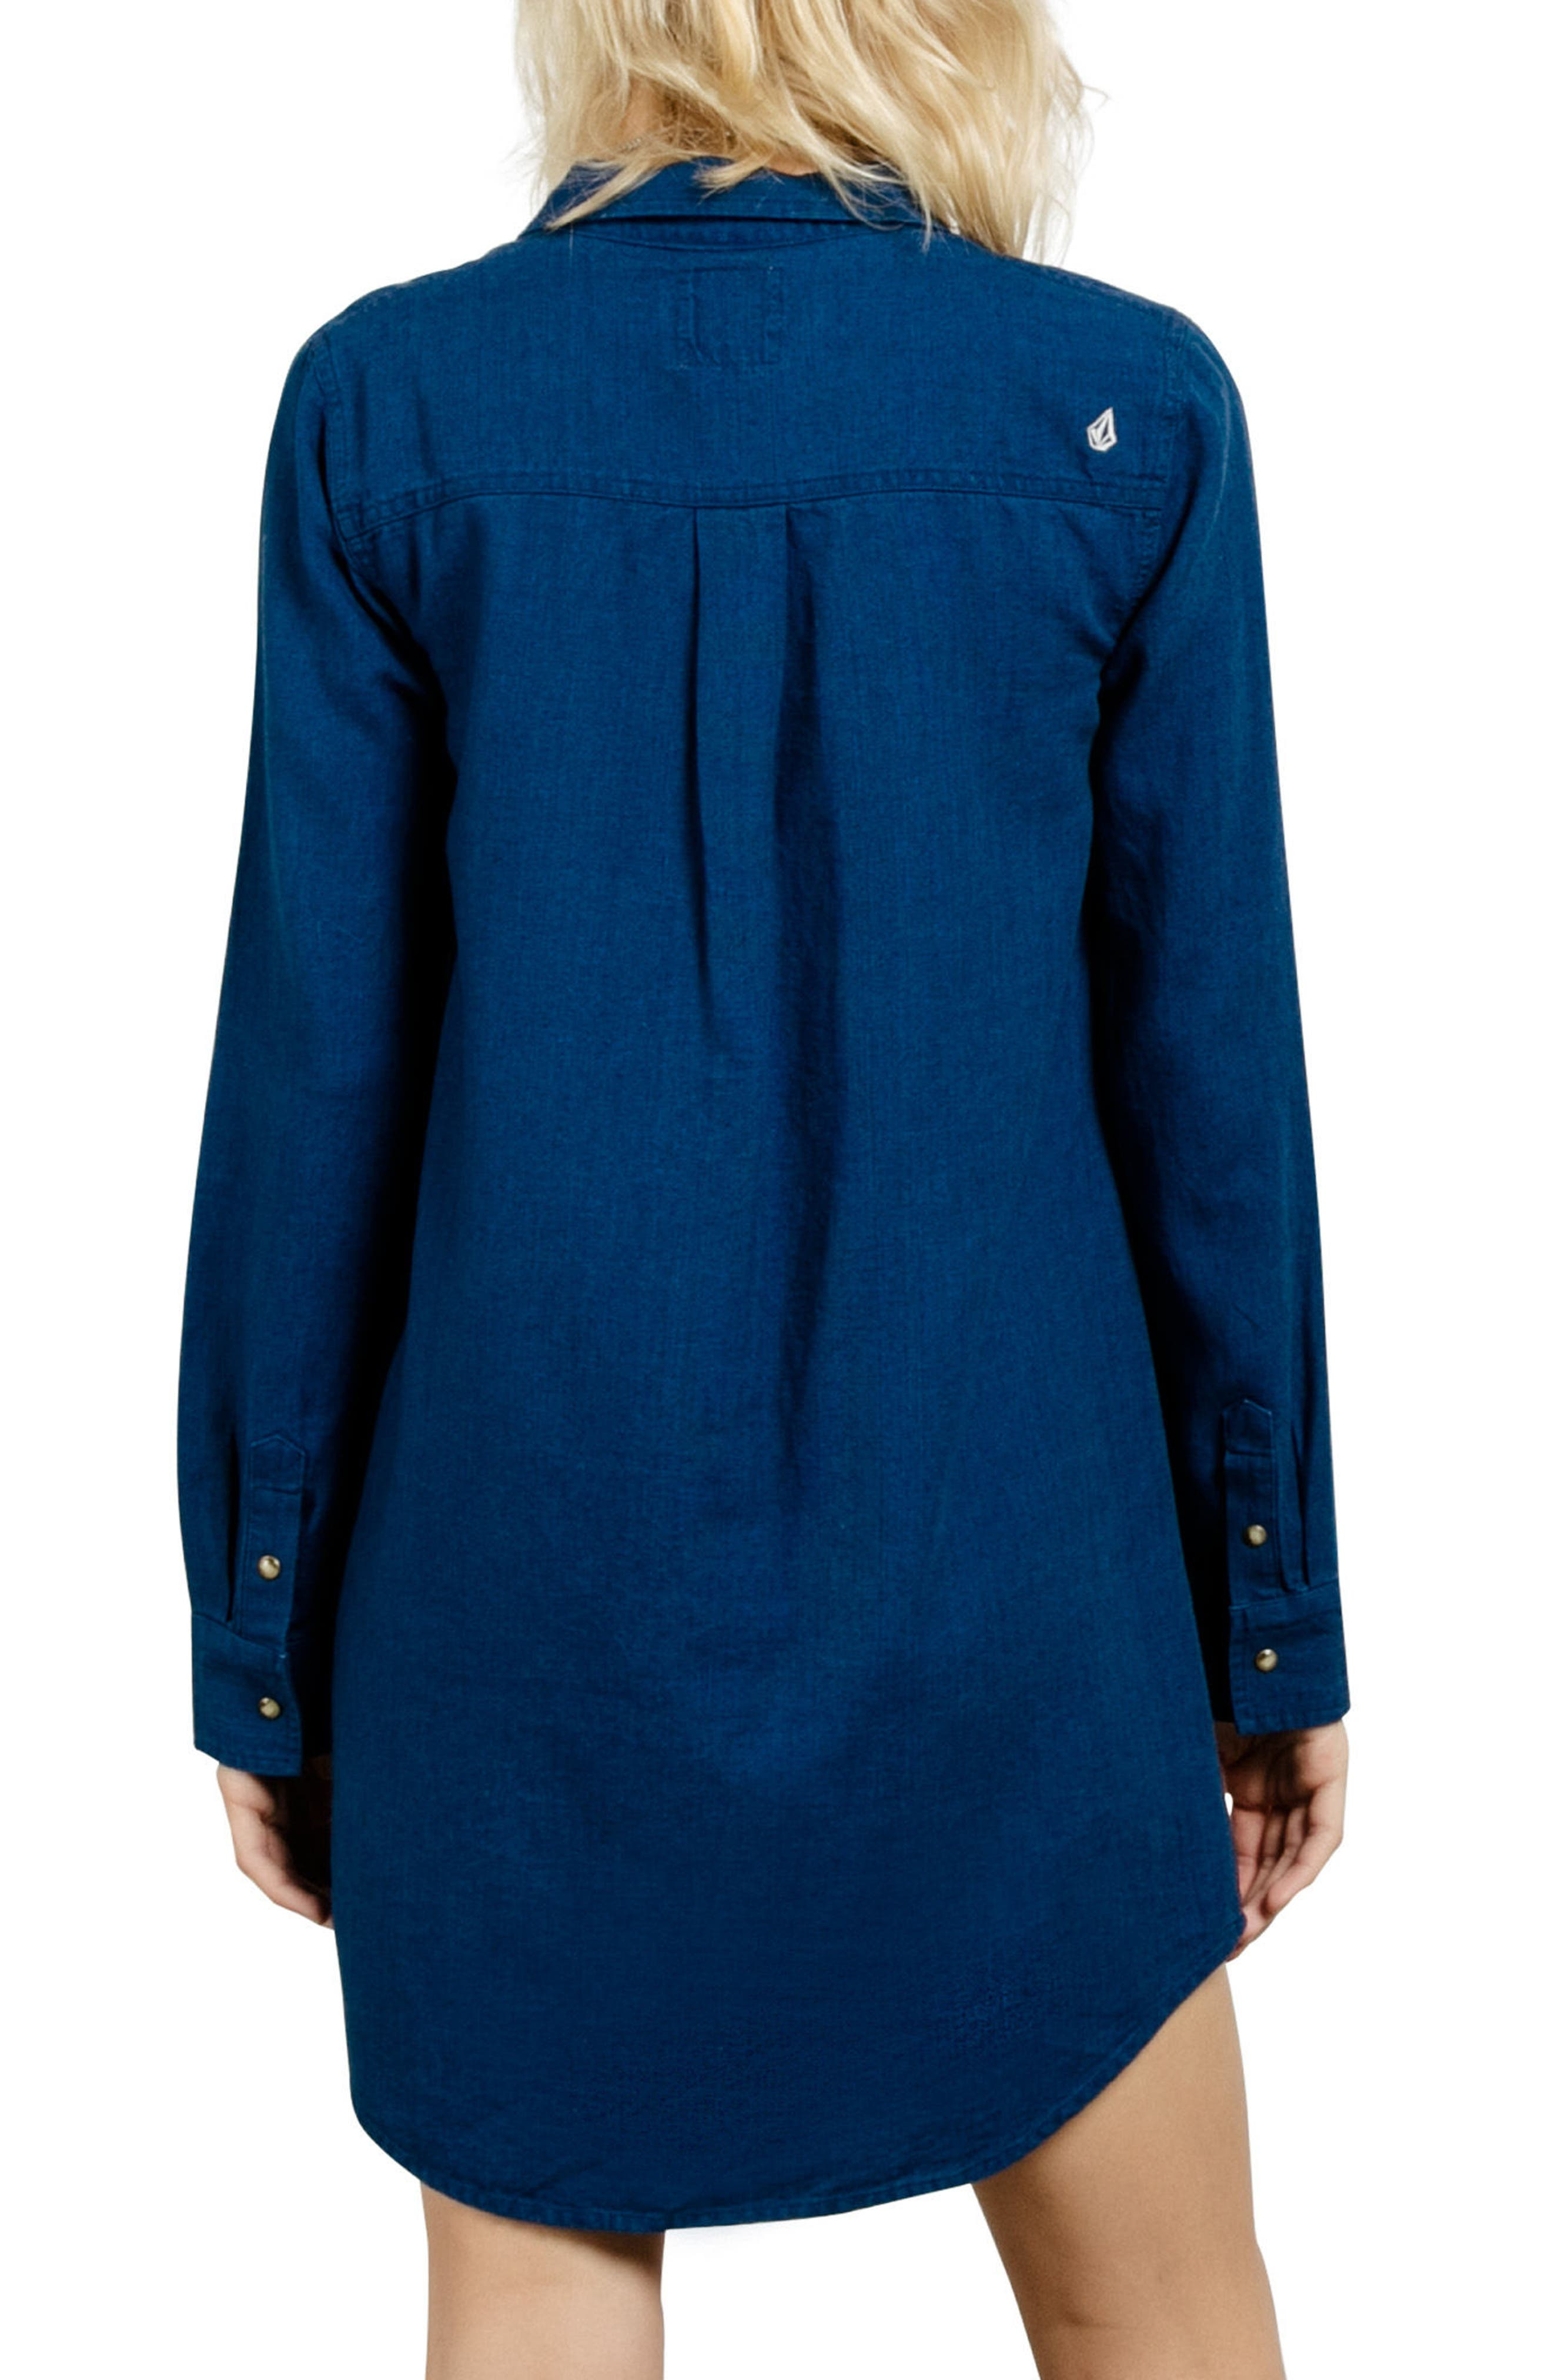 Cham Jam Chambray Shirtdress,                             Alternate thumbnail 2, color,                             Blue